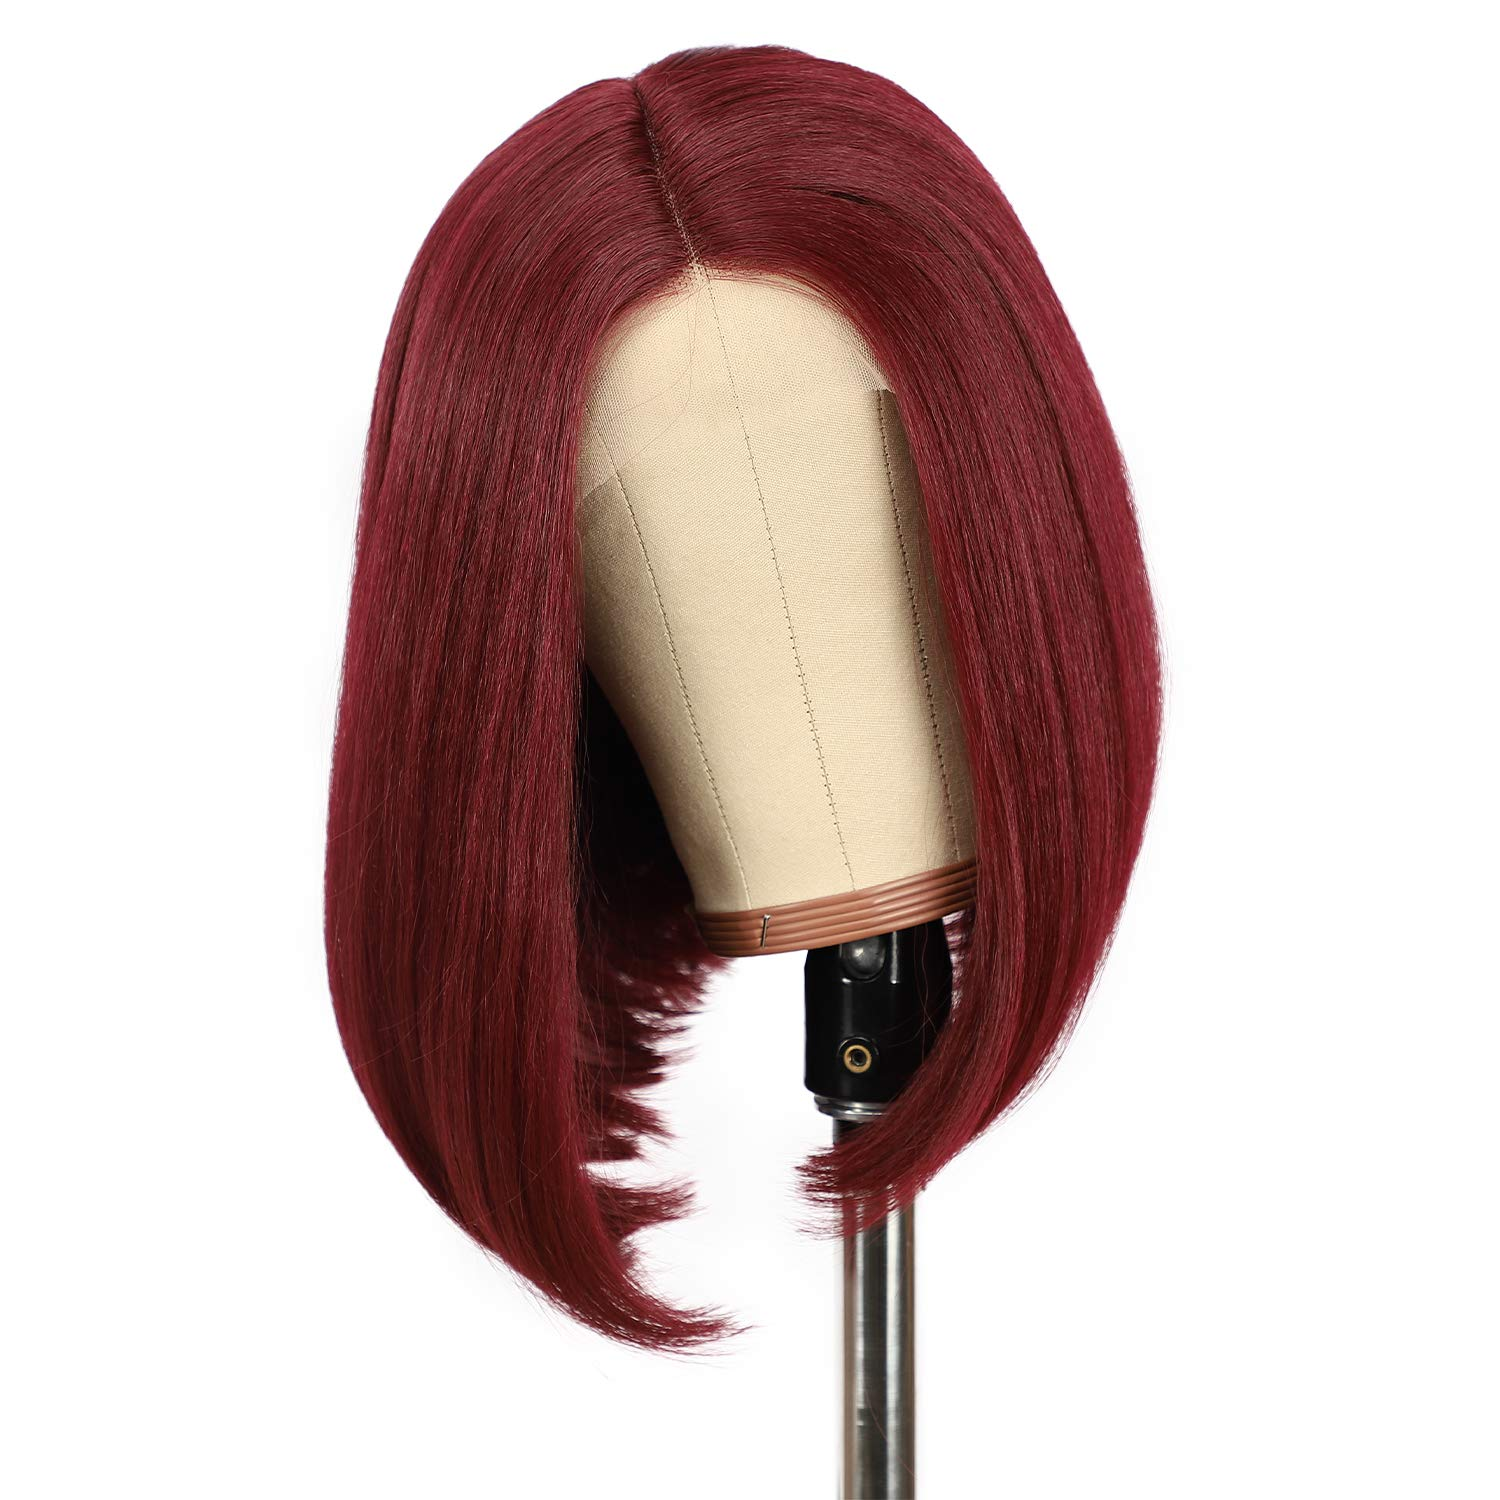 Direct sale of manufacturer BABEHERS Burgundy Bob Wig Deep Super beauty product restock quality top! T-Part Lace Wigs 14 Front Inches